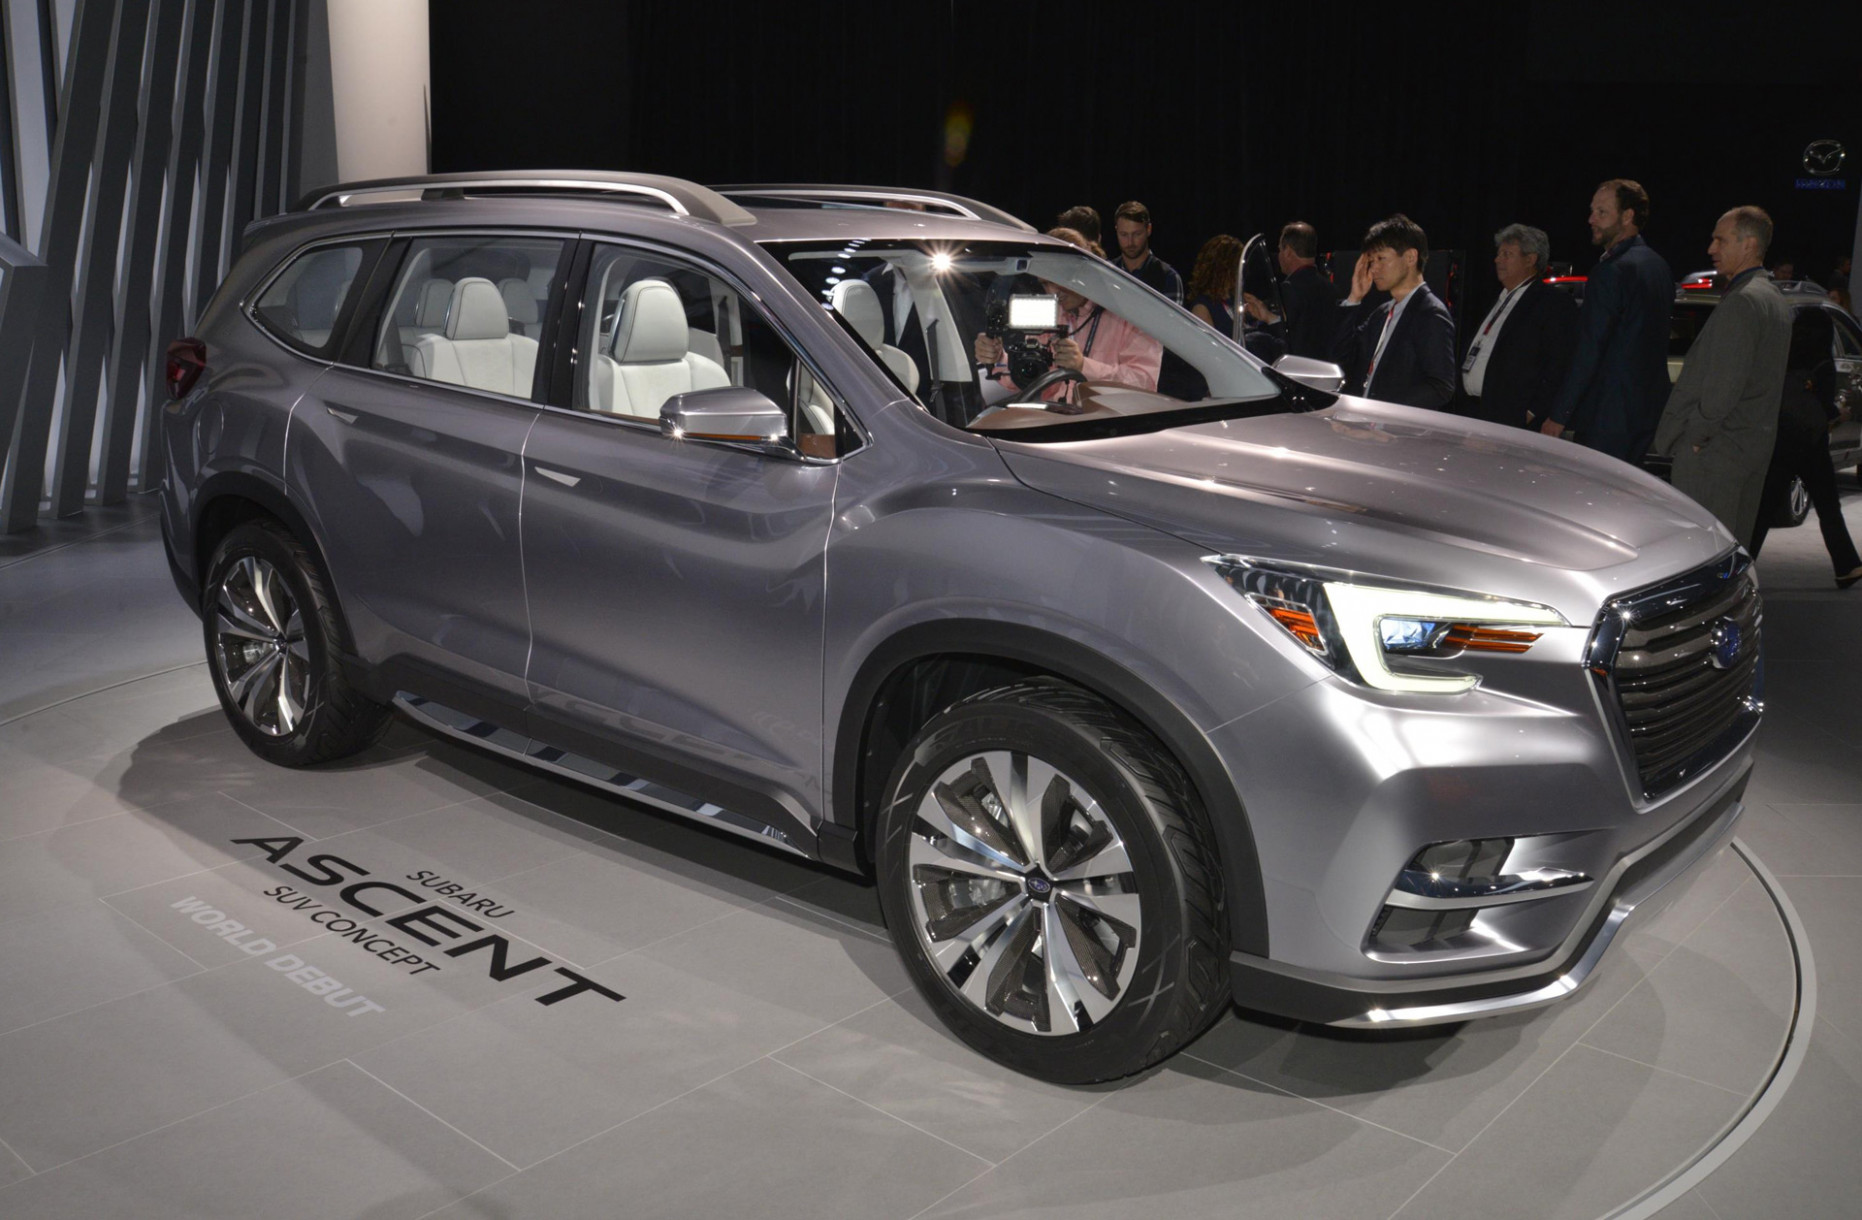 Redesign and Concept Subaru Ascent 2022